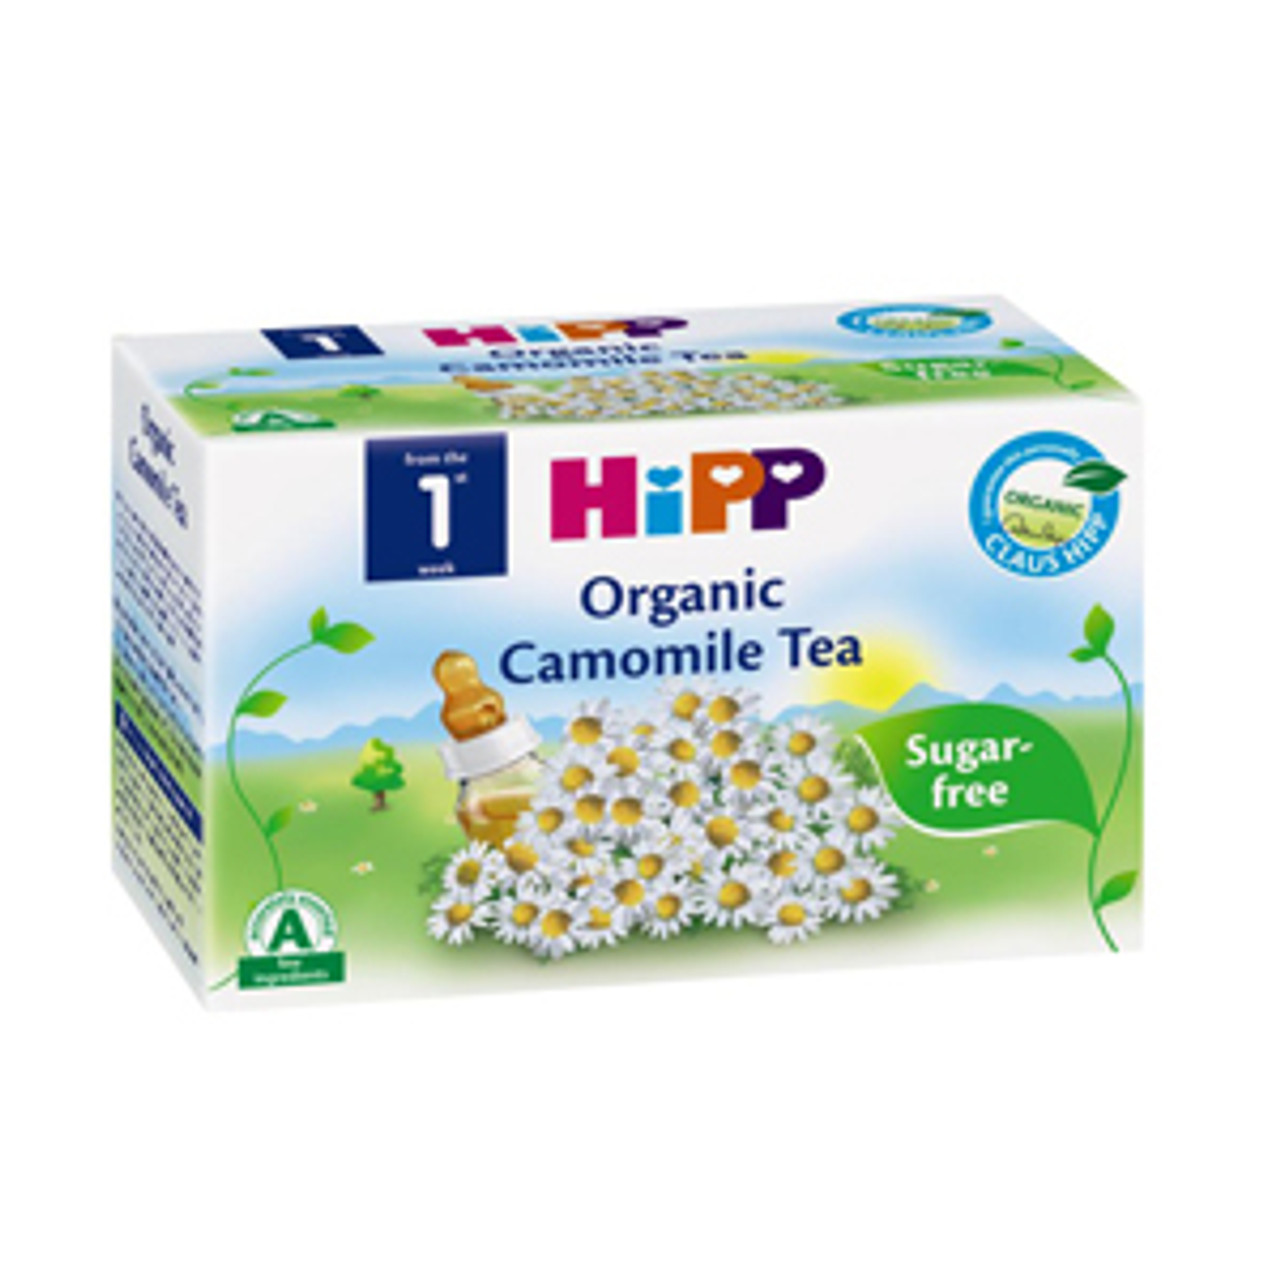 HiPP Organic Camomile Tea 30g (Photo for reference only) |  HiPP 喜寶有機洋甘菊BB安睡茶 30克 (圖片只供參考)